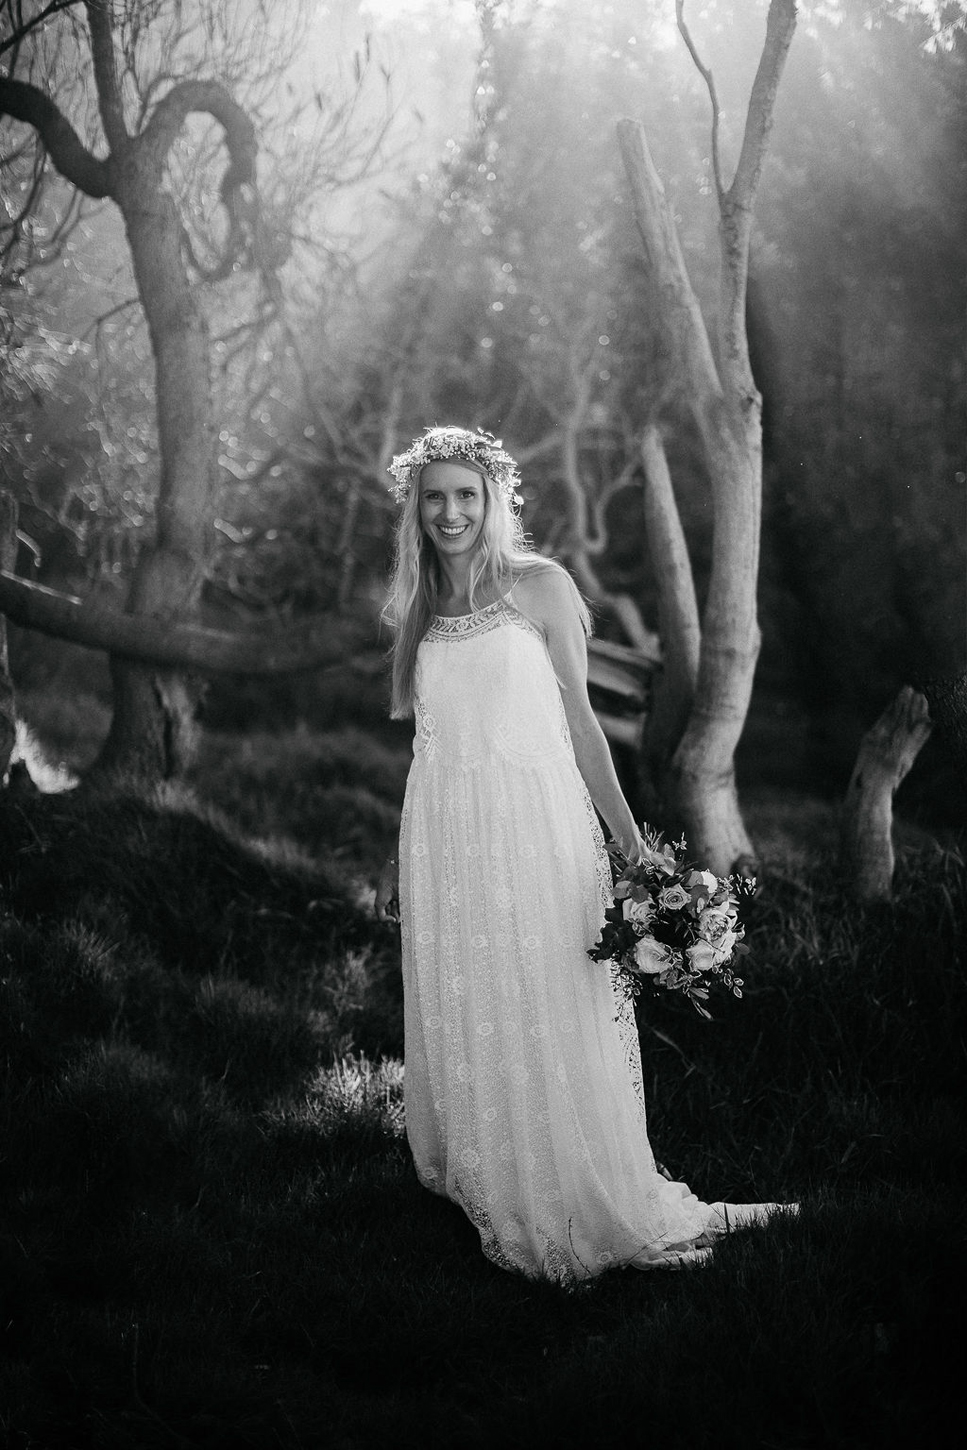 """Images that Capture Each Fleeting Moment - Wedding photography fads come and go, but Byron Bay based photographer Nina Claire has an eye for capturing the intimate, fleeting moments you will want to remember forever. Years of experience have honed her ability to slip into the background of your day, often unseen, and create magical portraits with as little need for """"posing"""" as possible. You will be able to relax, celebrate, and know that Nina's camera is nearby to document every emotion.Visit WebsiteByron Bay, AustraliaPhone: +61 4 2258 2803Email: ninaclairephotography@gmail.com"""